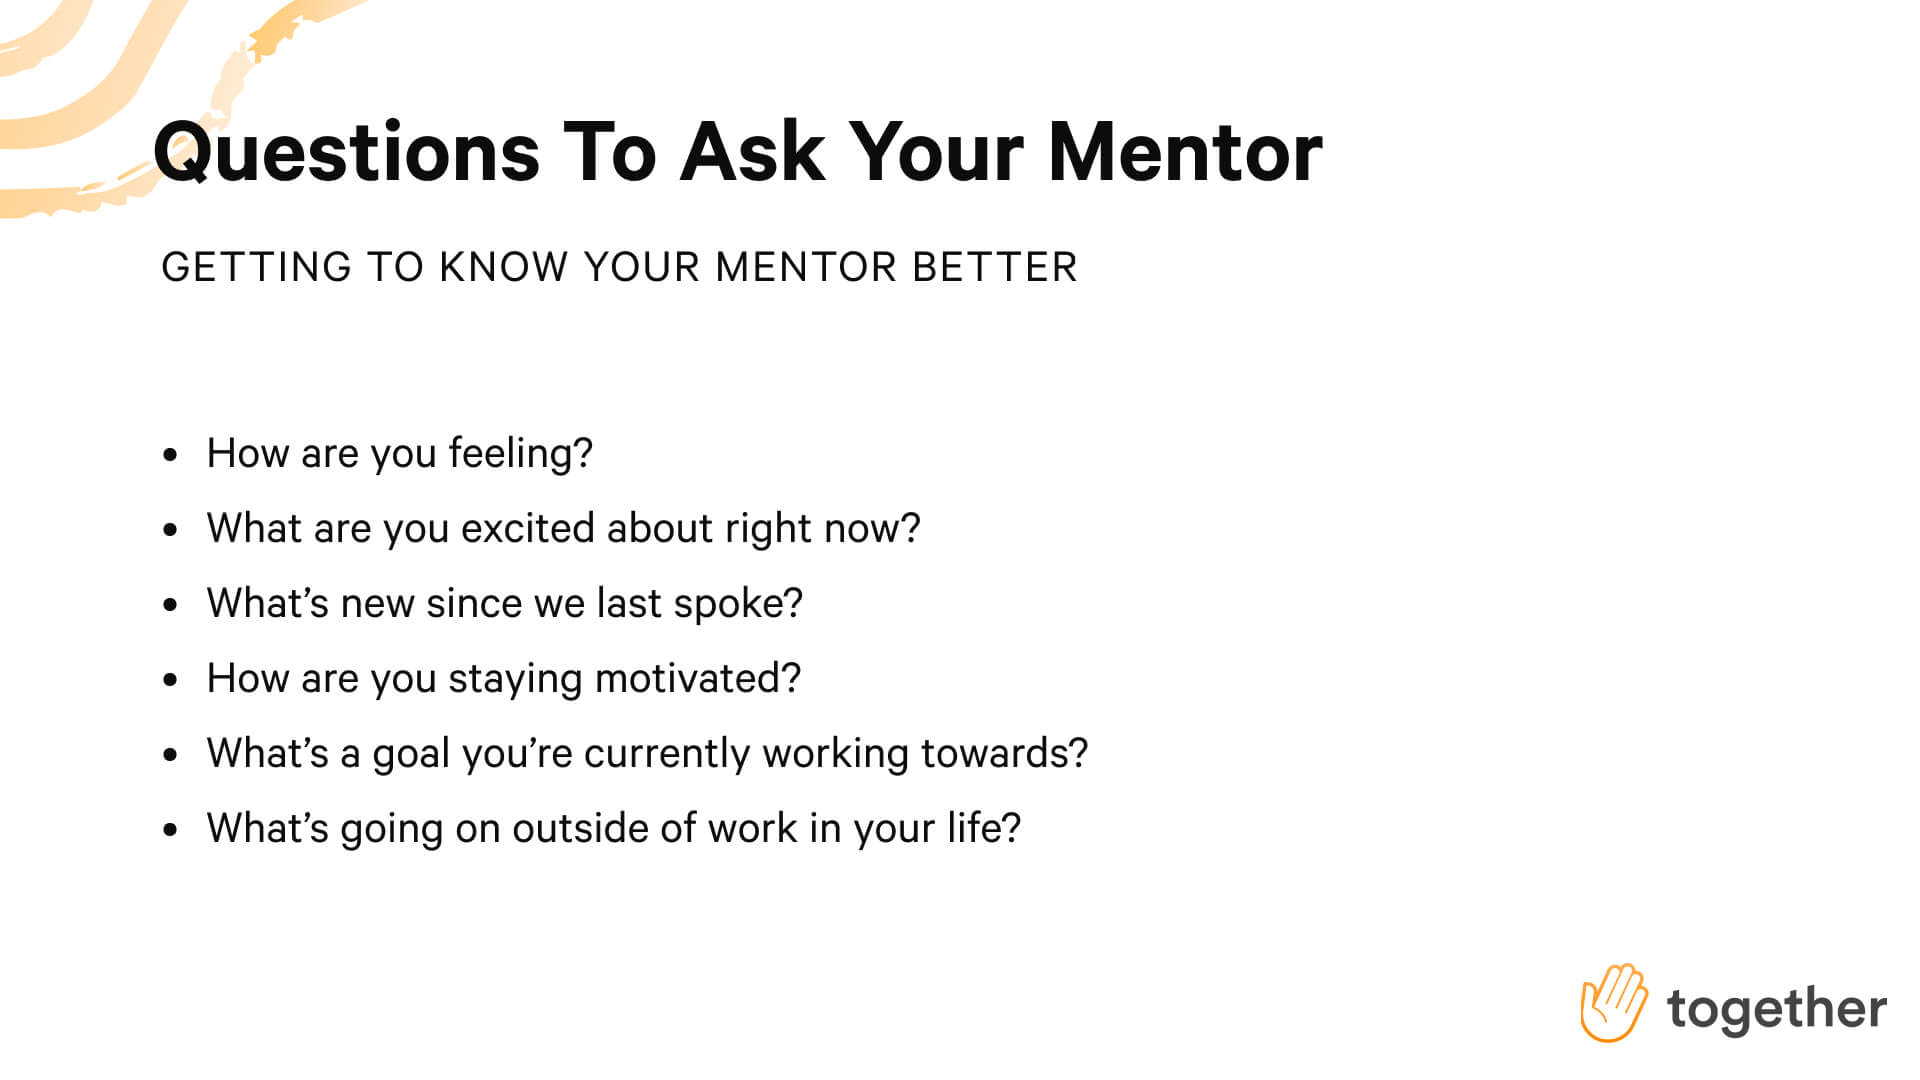 Questions to get to know your mentor better